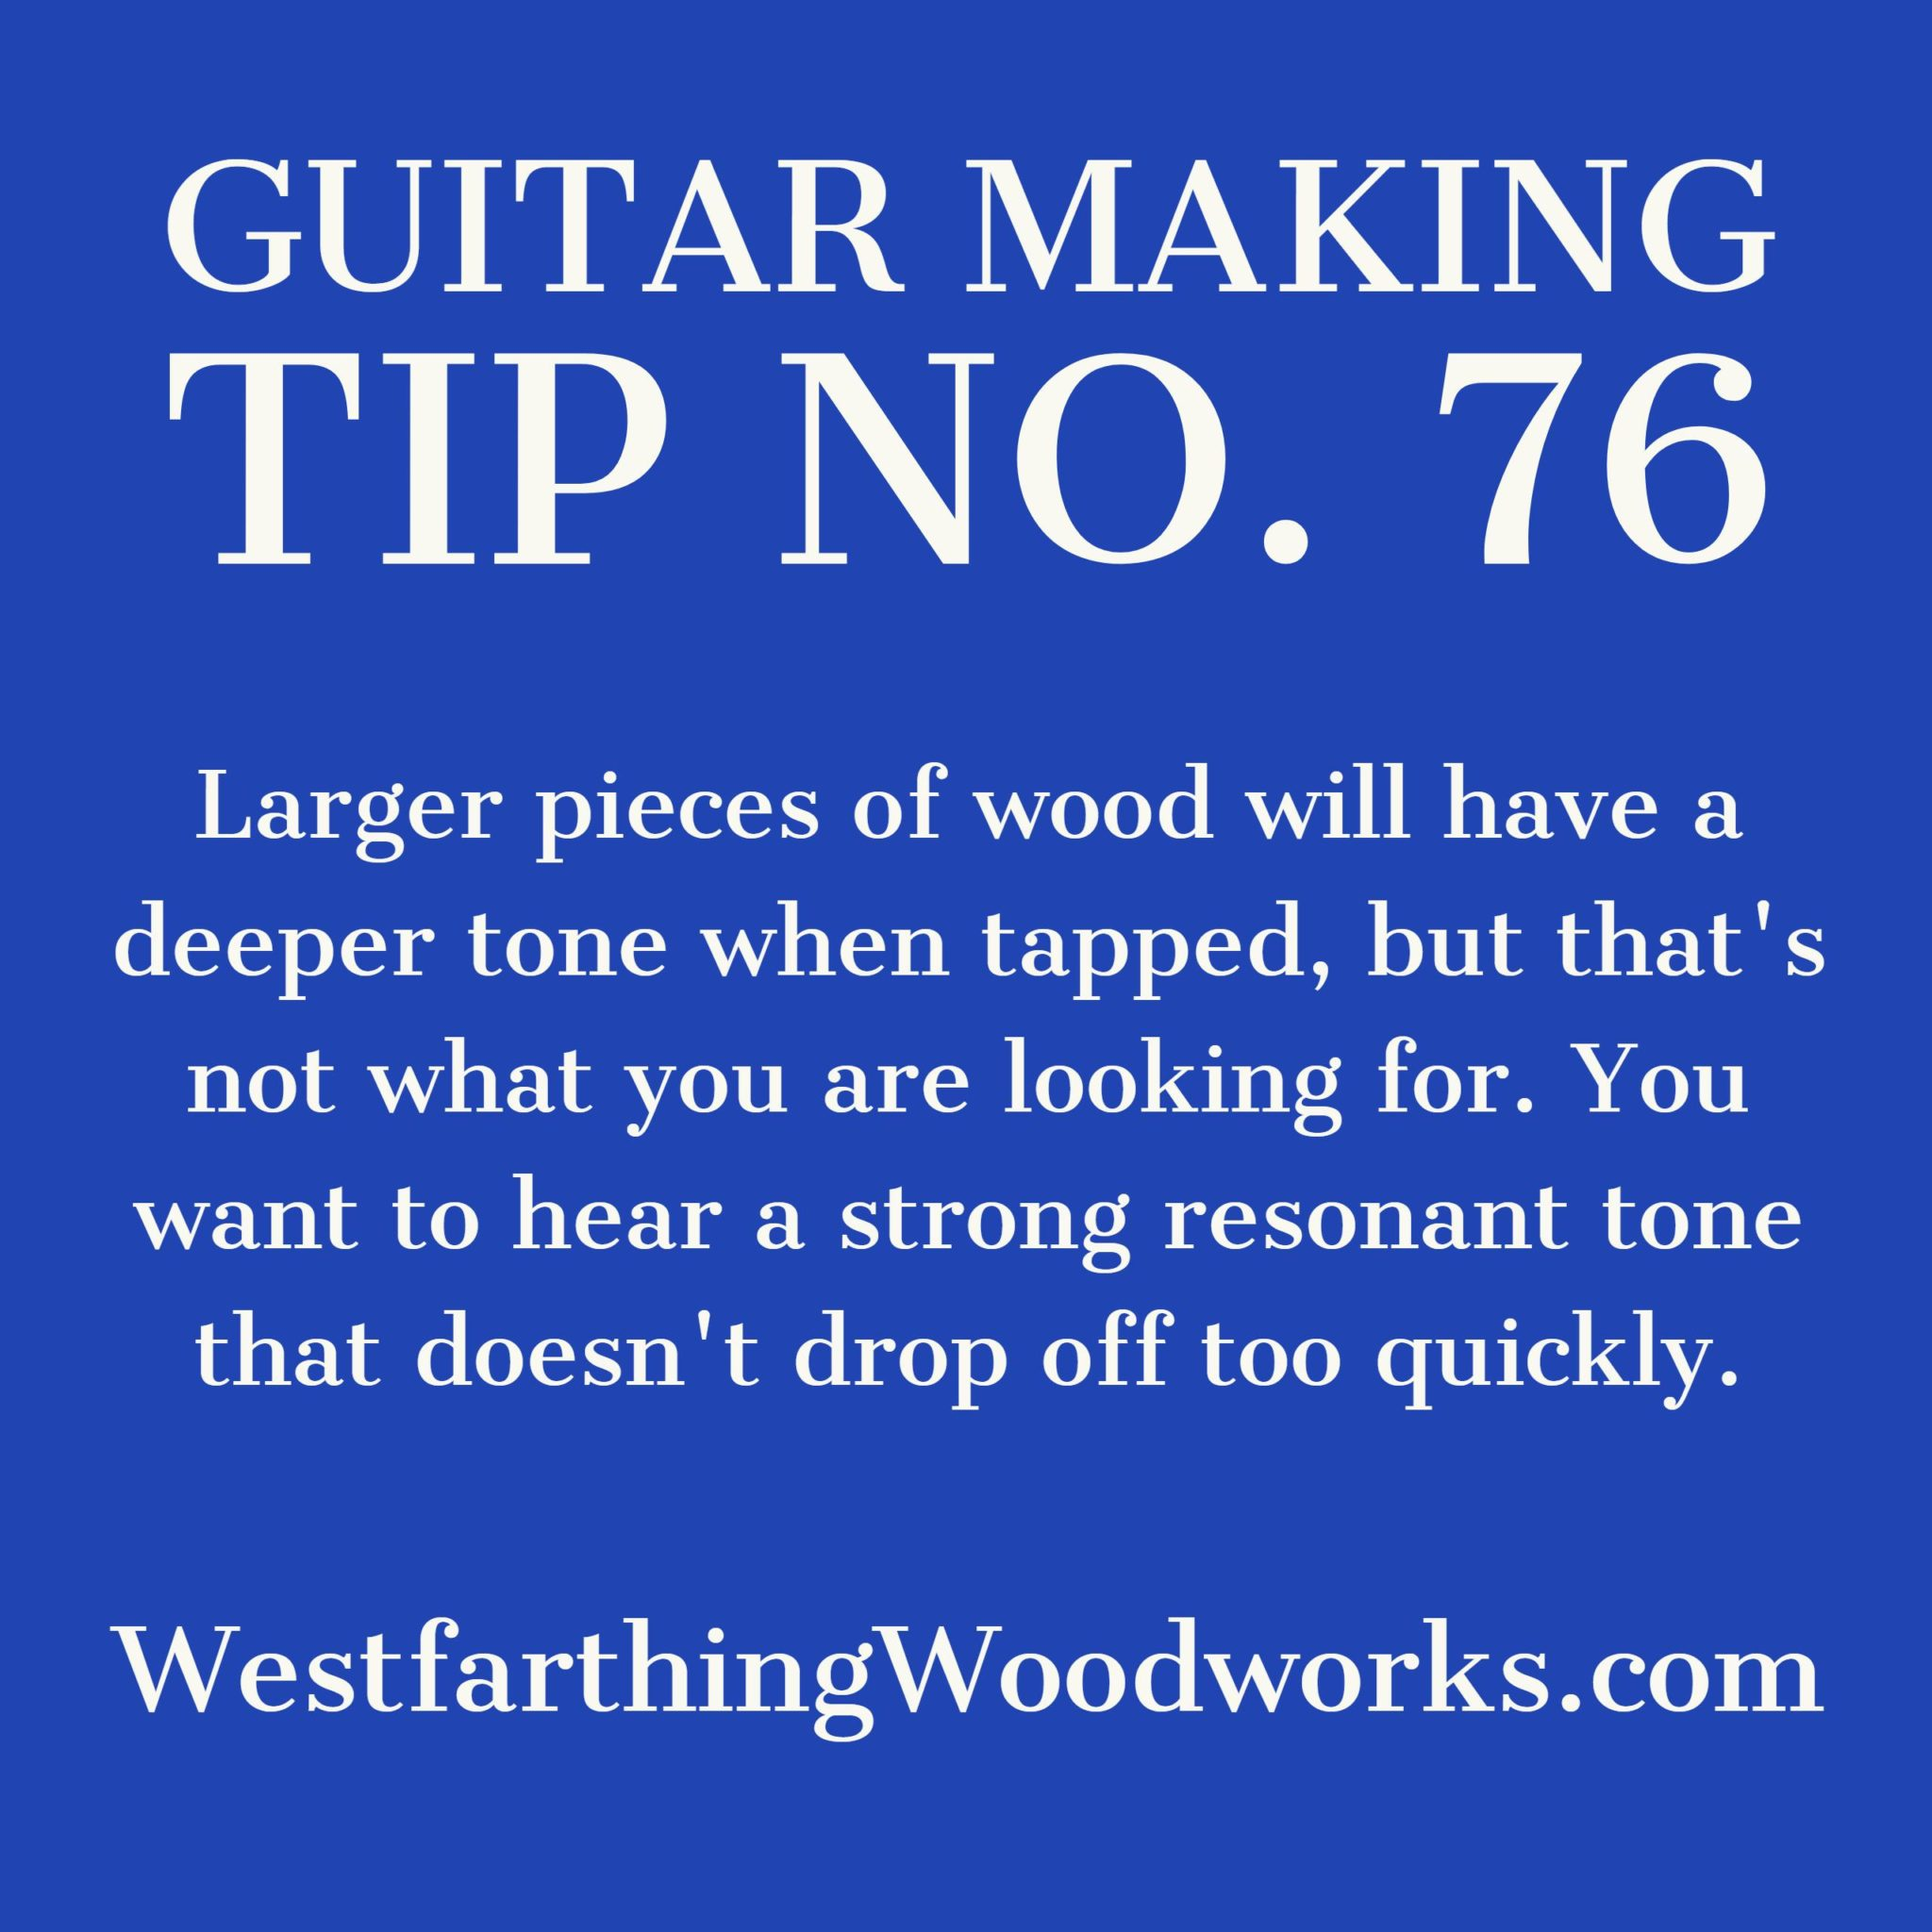 guitar making tip number 76